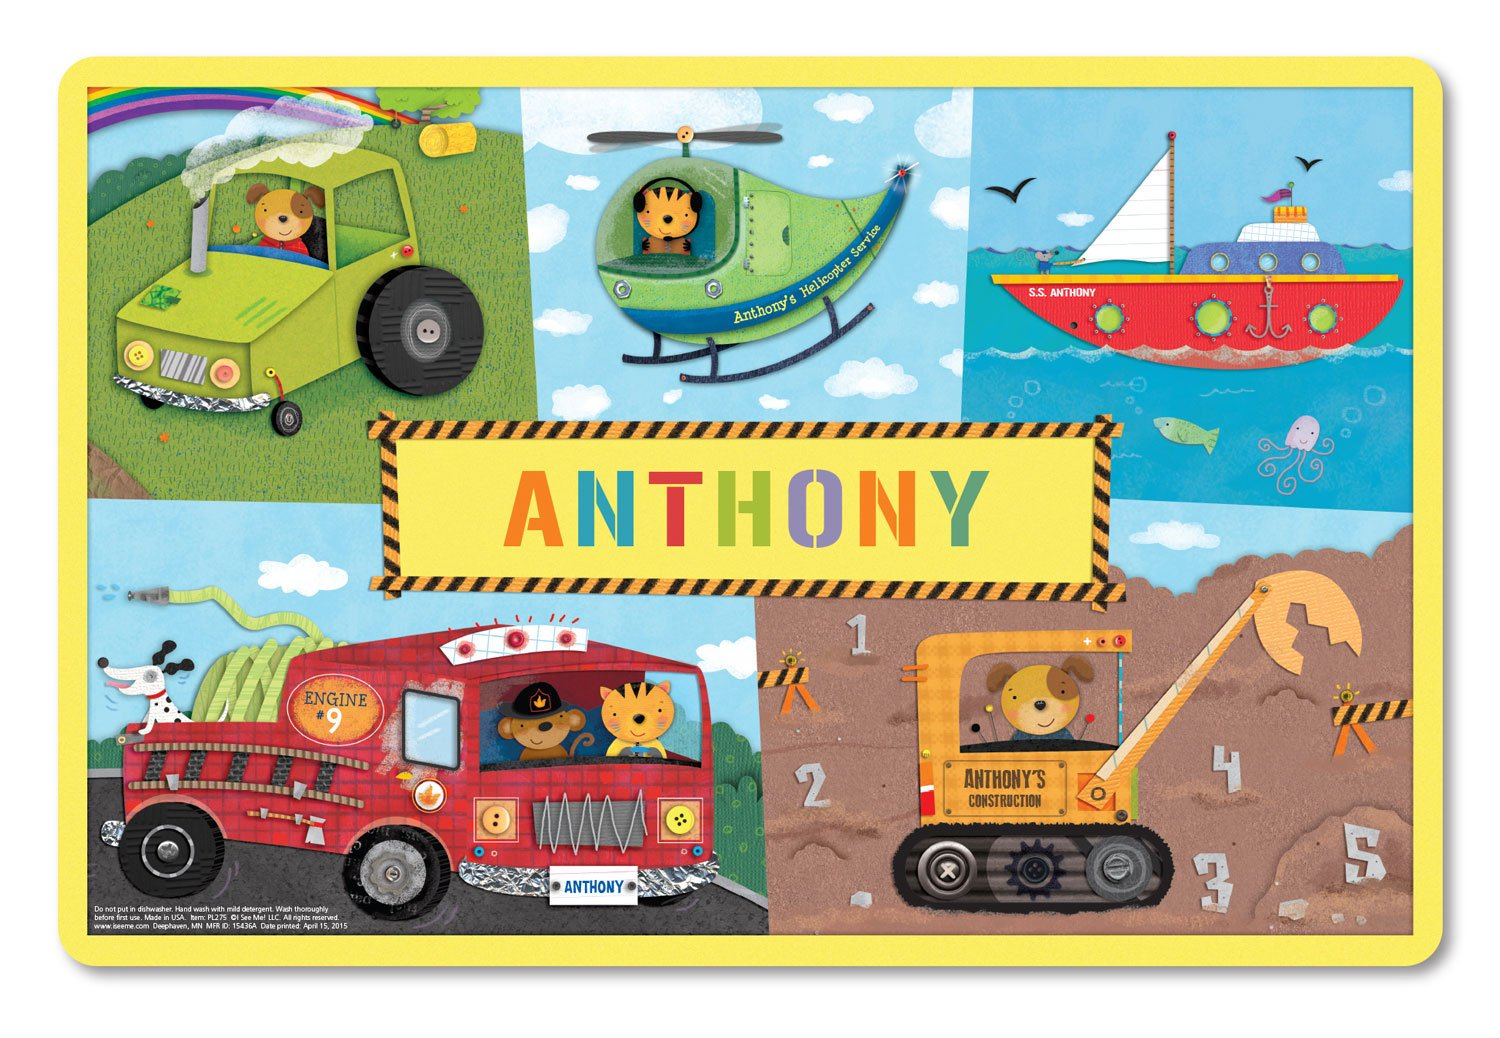 Personalized Placemat Craft Mat Firetruck by I See Me!